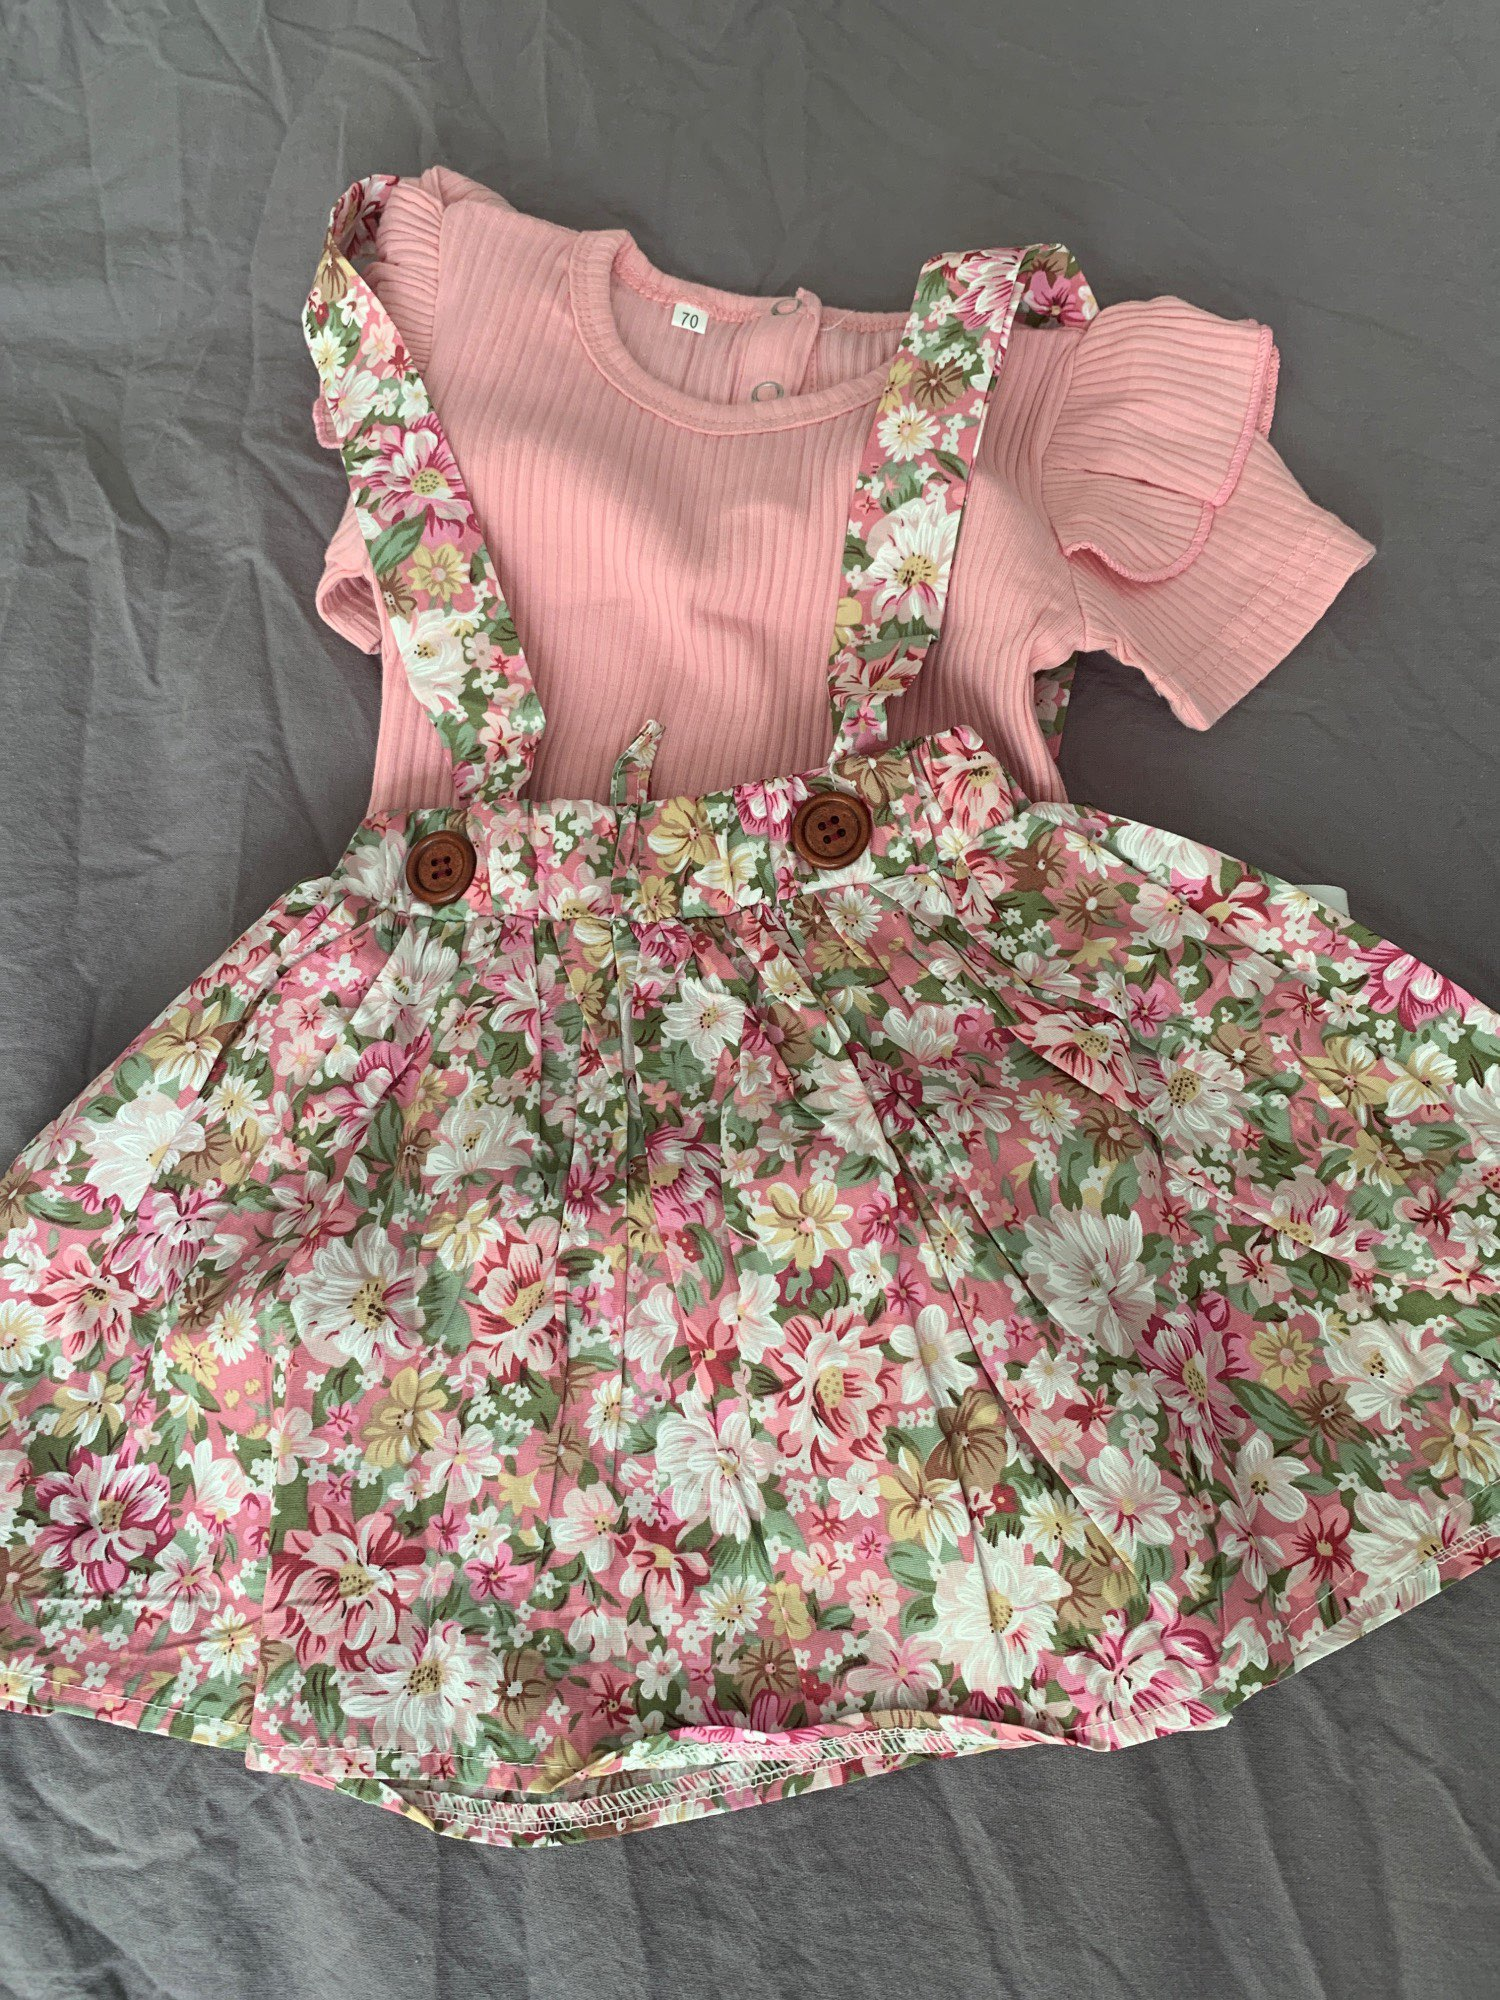 3Pcs Baby Girl Summer Clothing Set Outfit Romper Ruffle Floral Dress Overalls Outfit For Toddler Clothing photo review